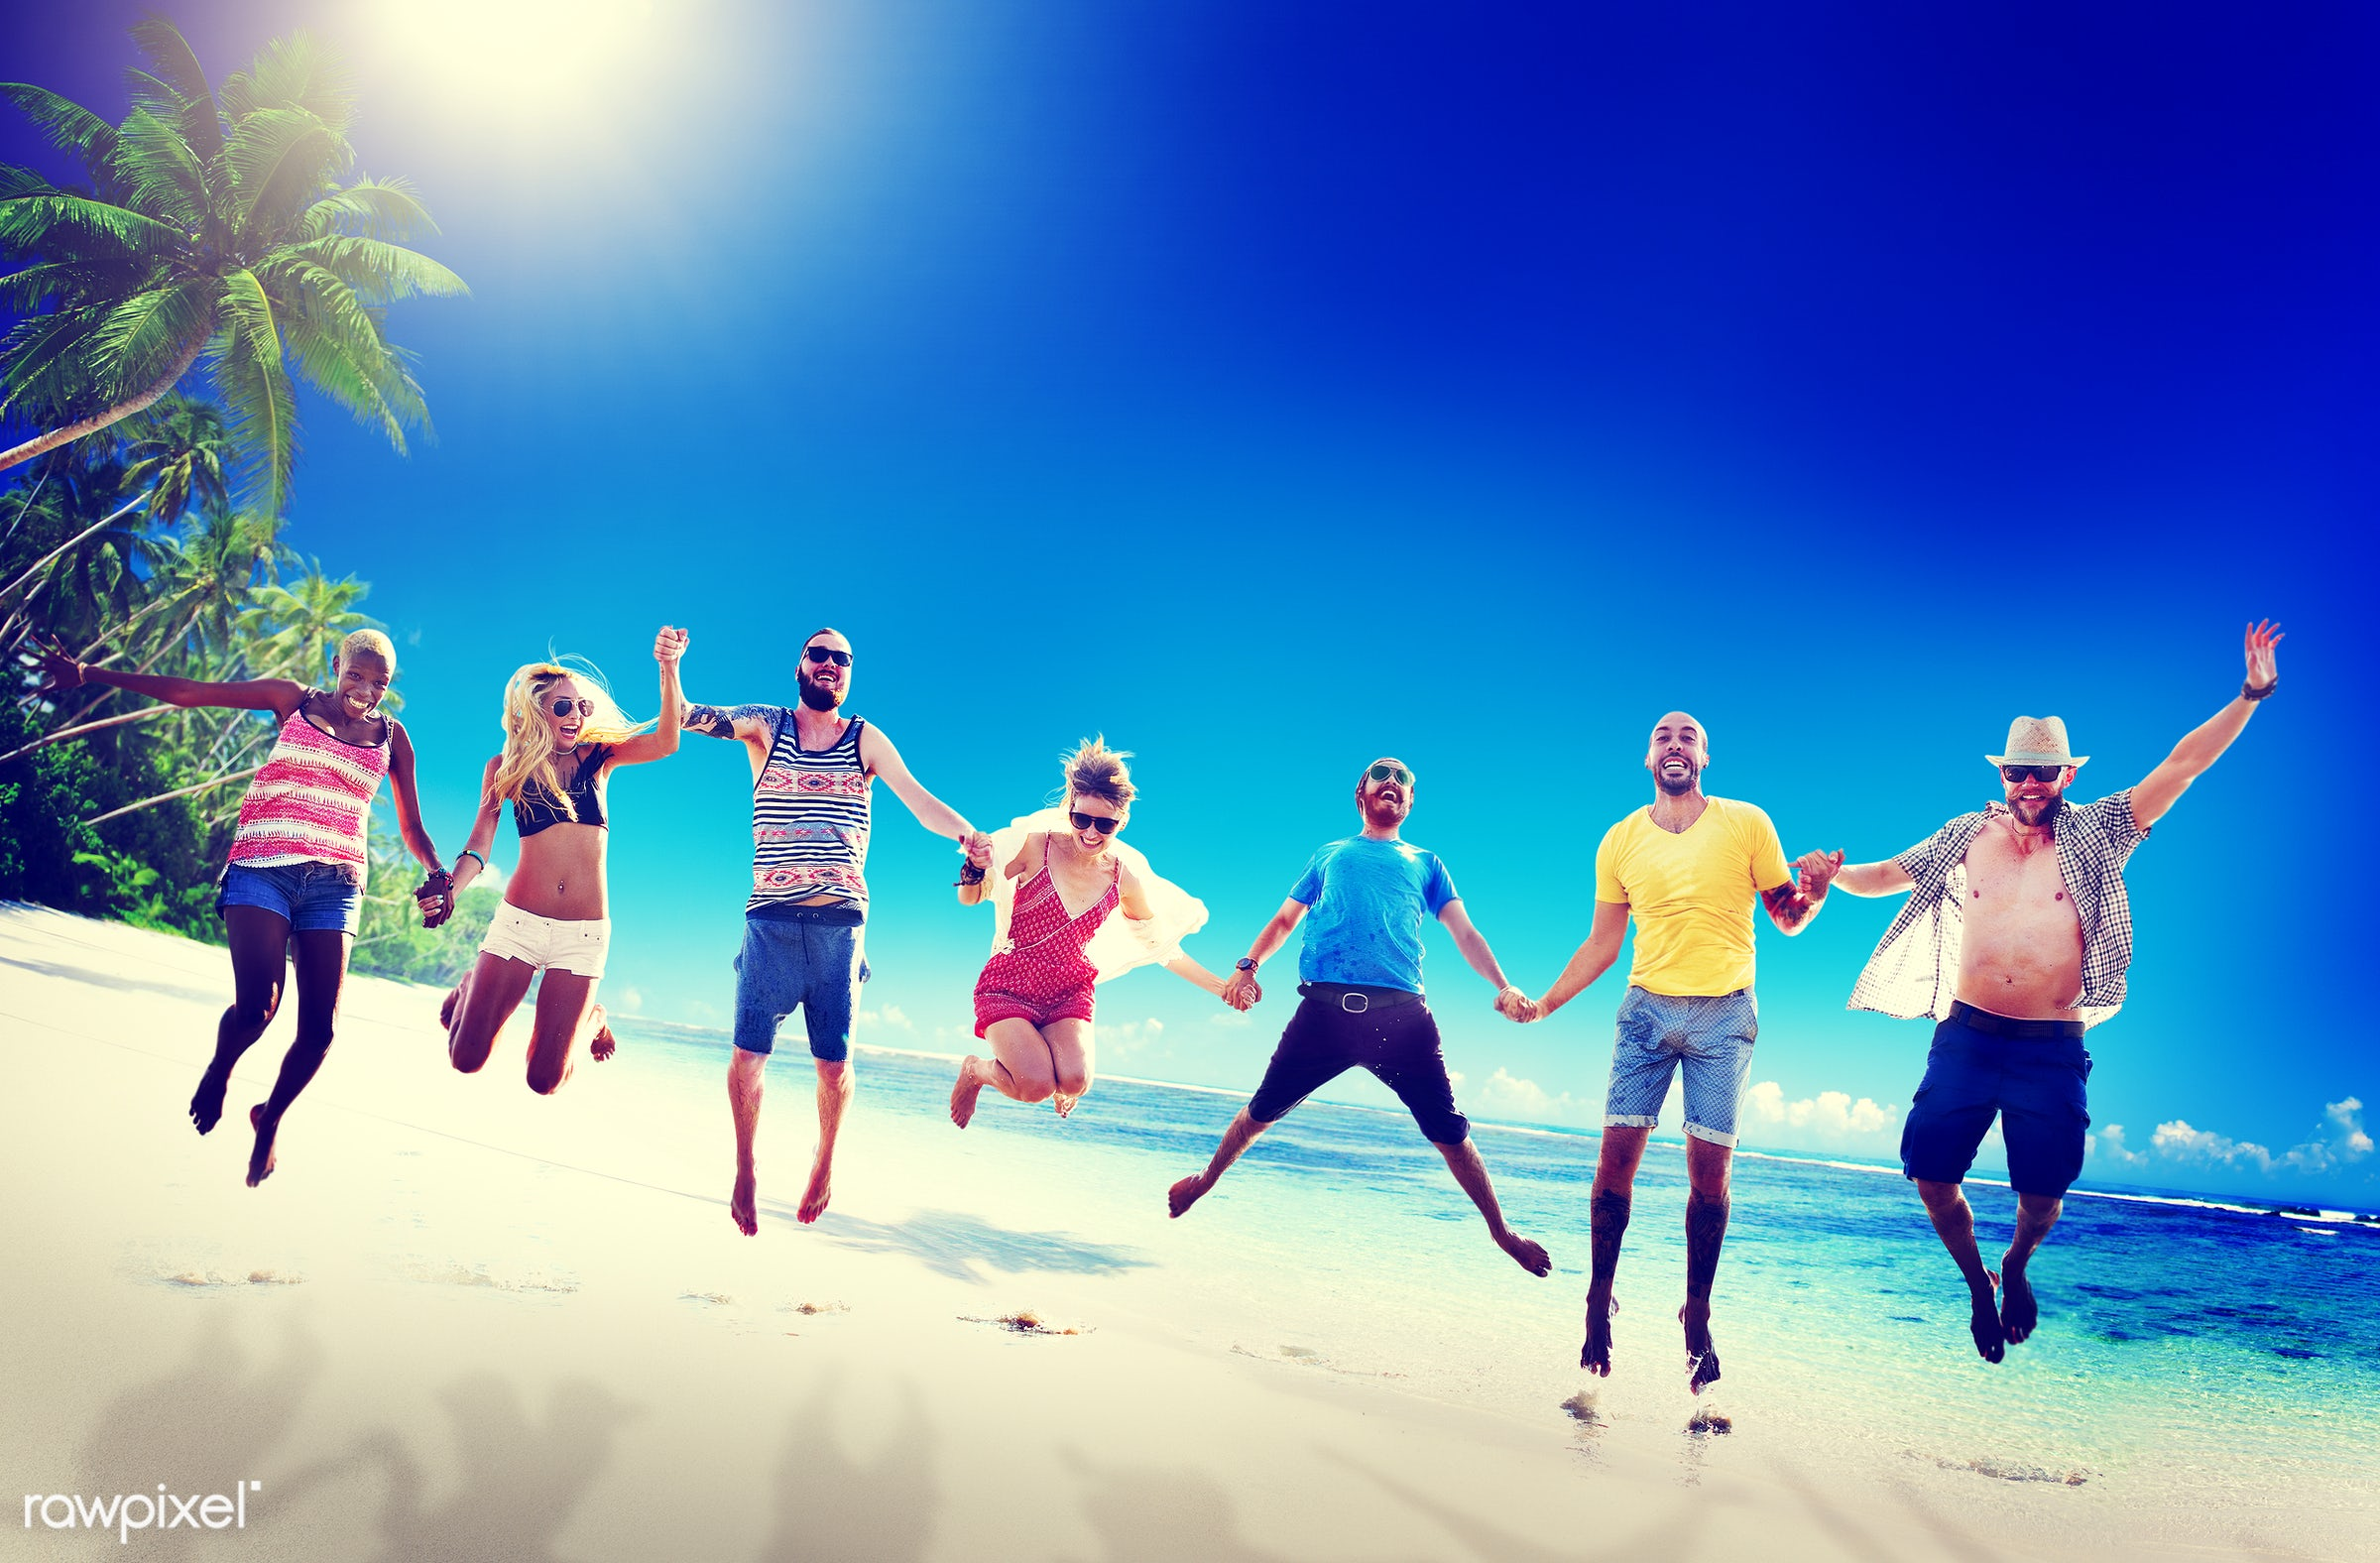 action, african descent, asian ethnicity, beach, bonding, cheerful, chilling, colorful, day, diverse, diversity, ecstatic,...